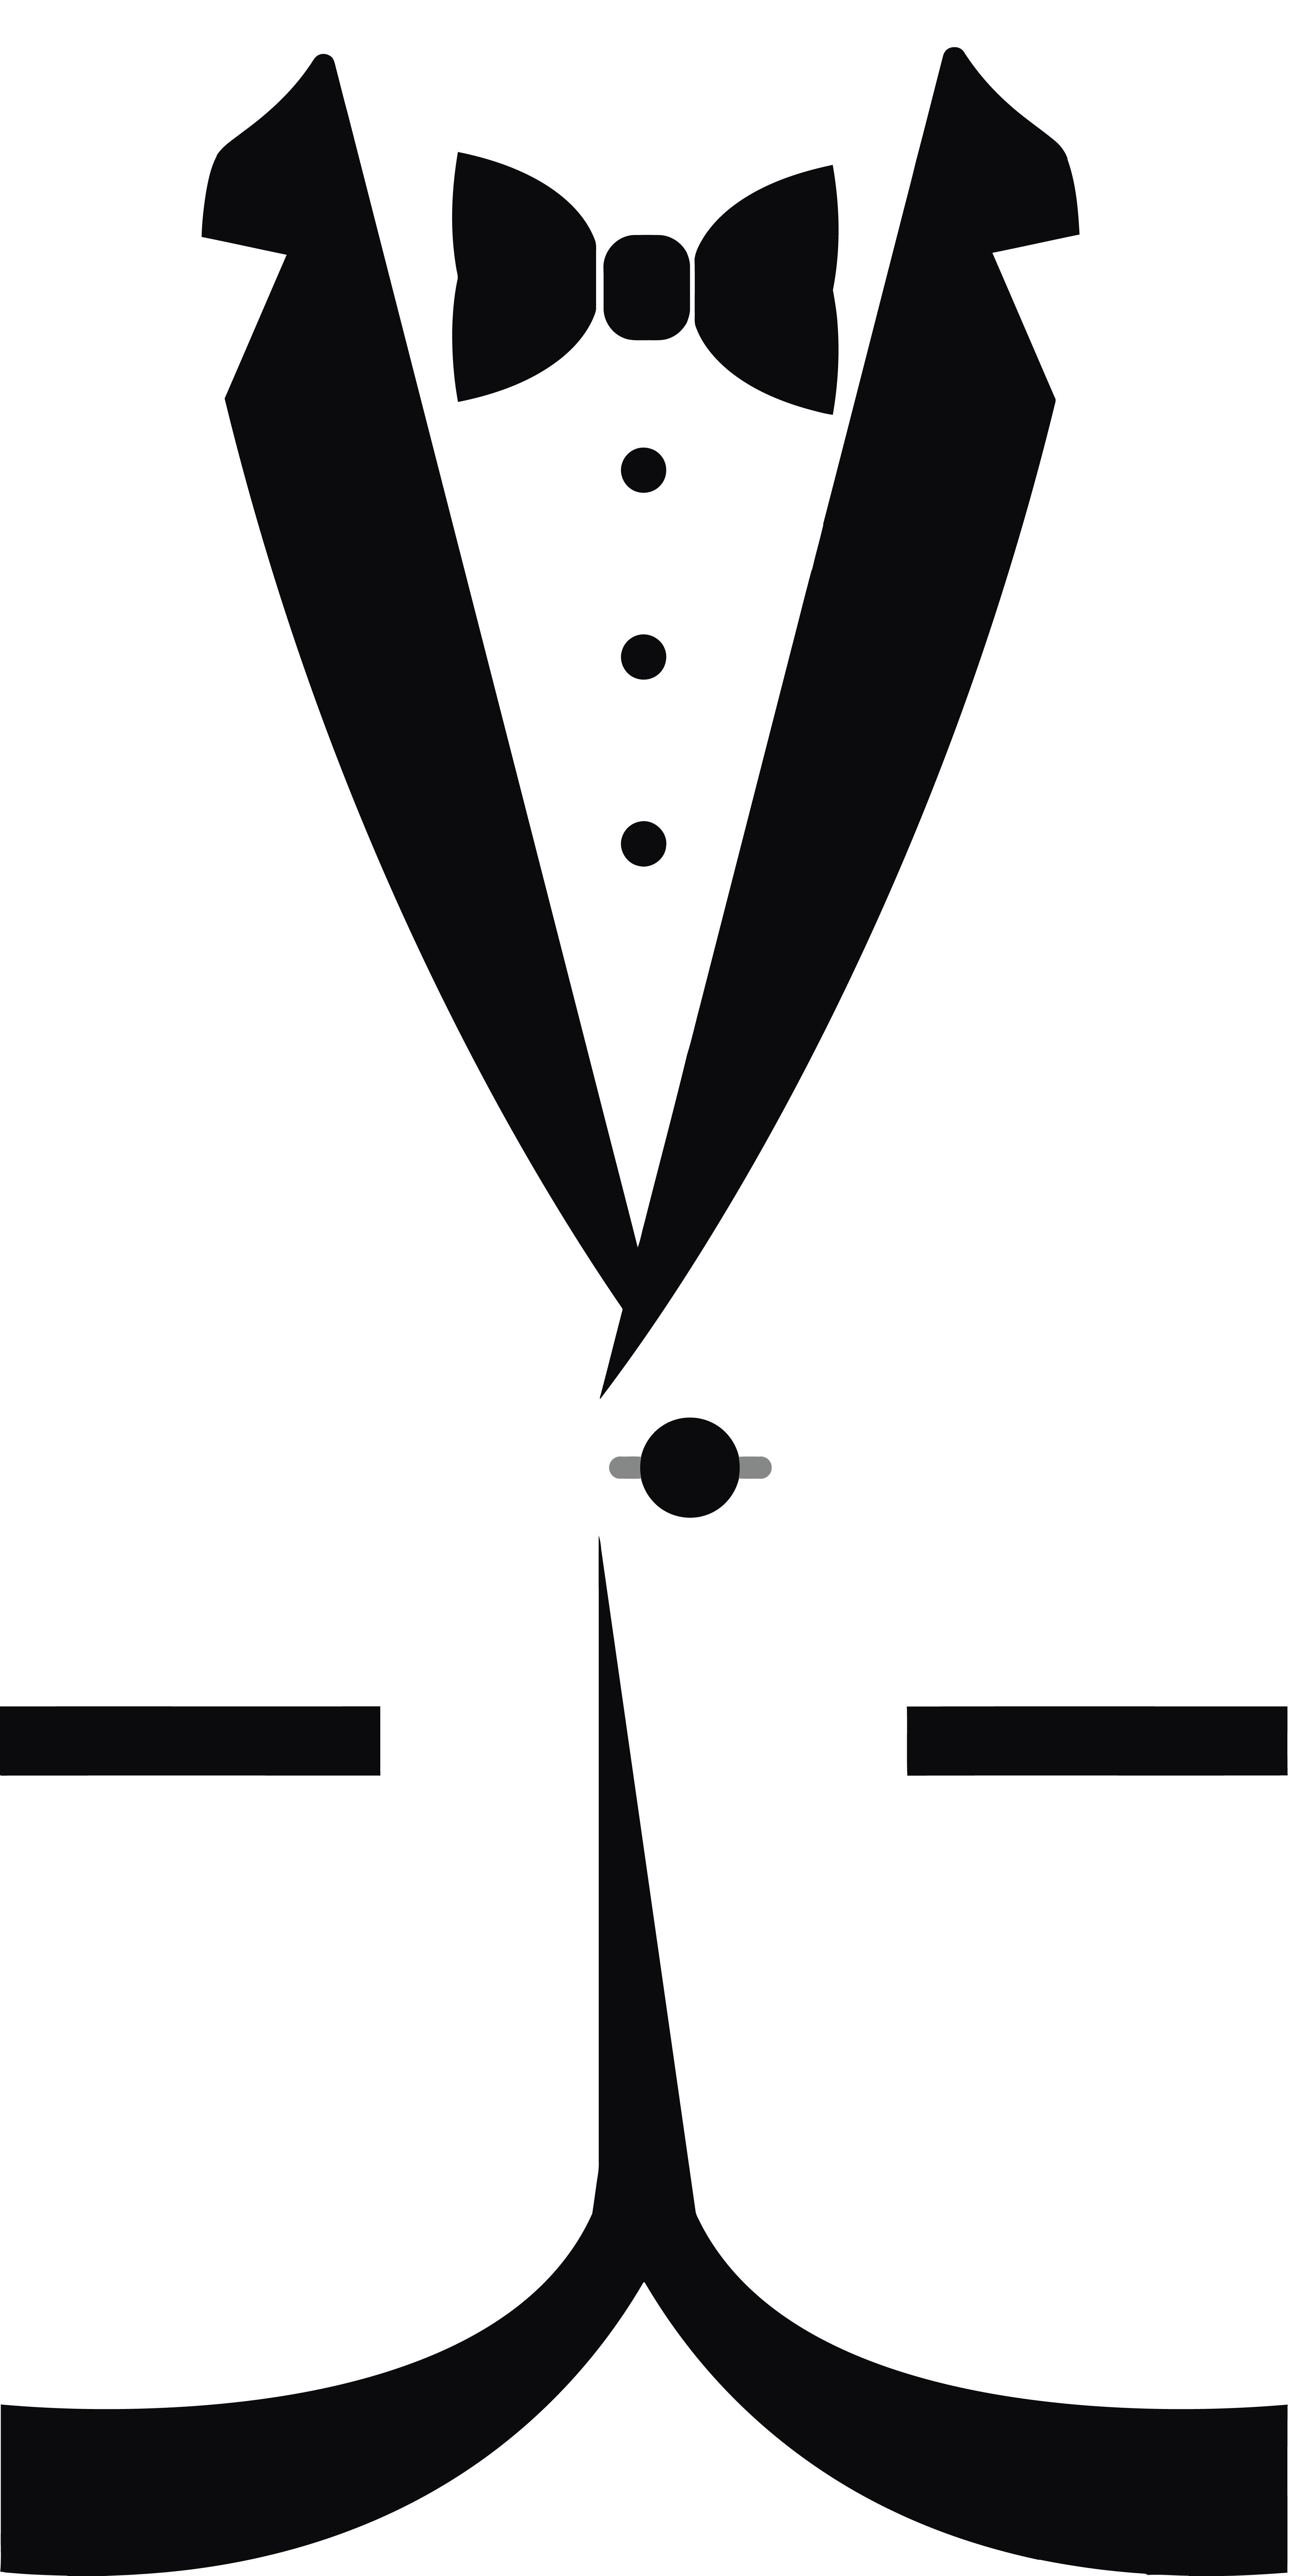 Free Clipart Of A black and white formal bow tie and tuxedo